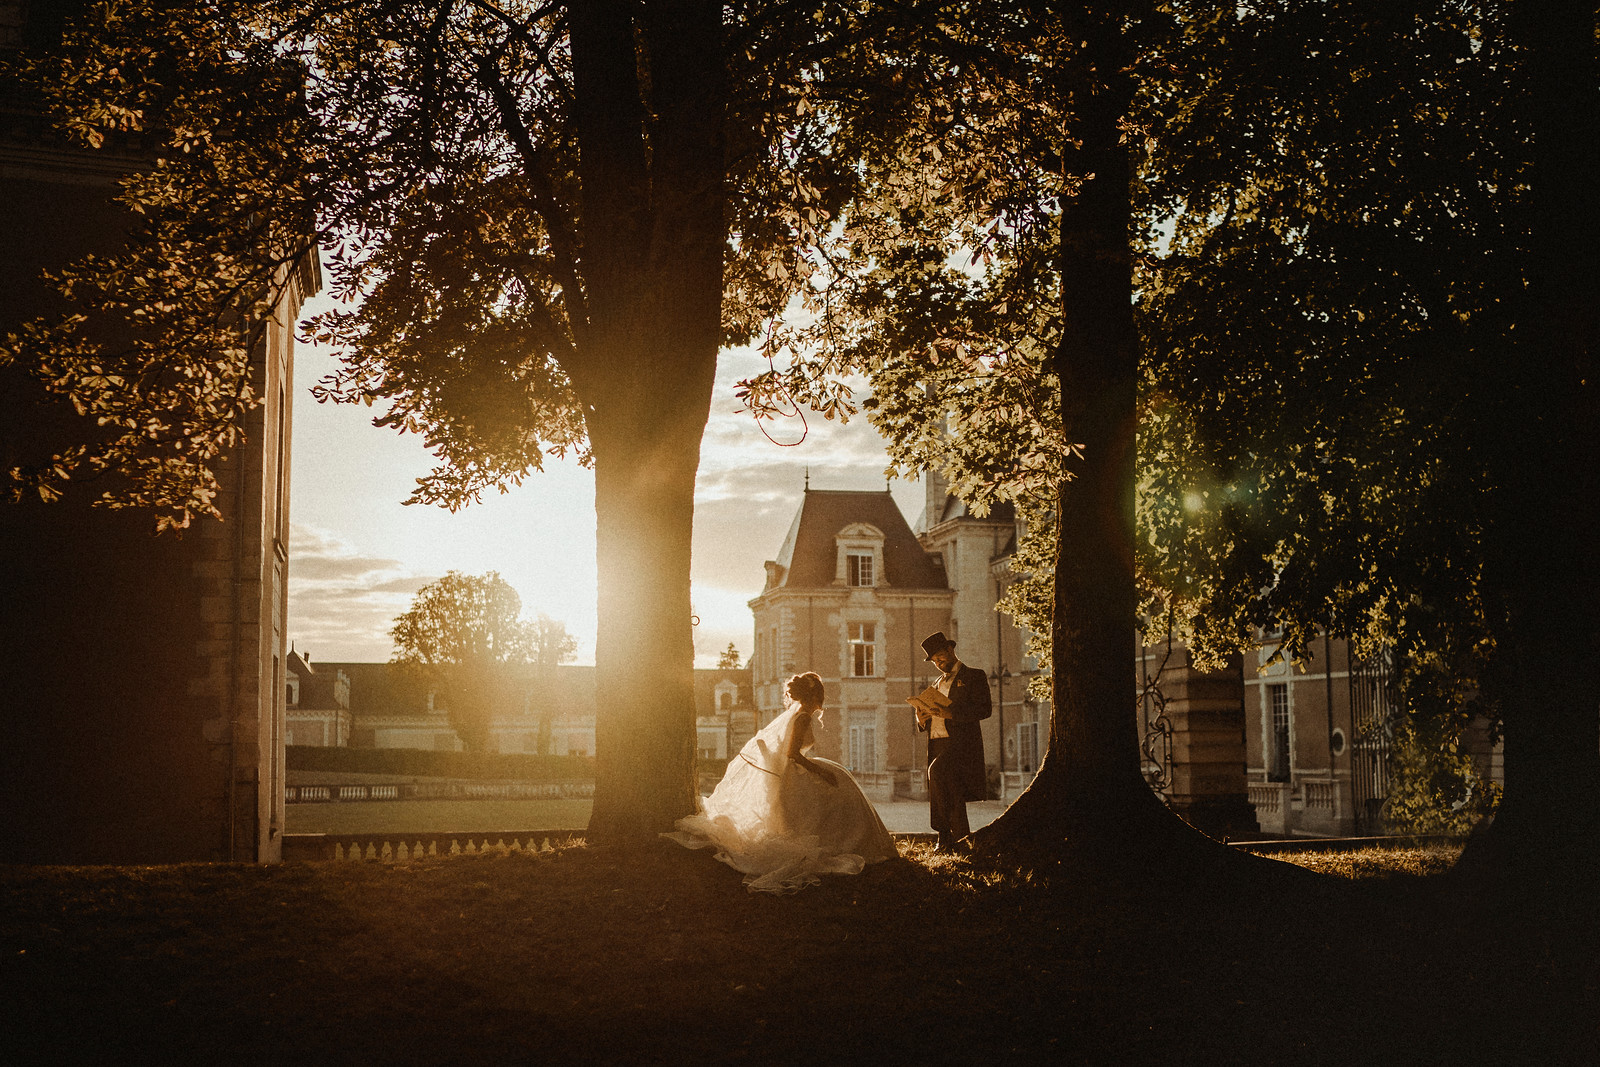 Bride and groom between the middle of trees, as the sun is setting in the background